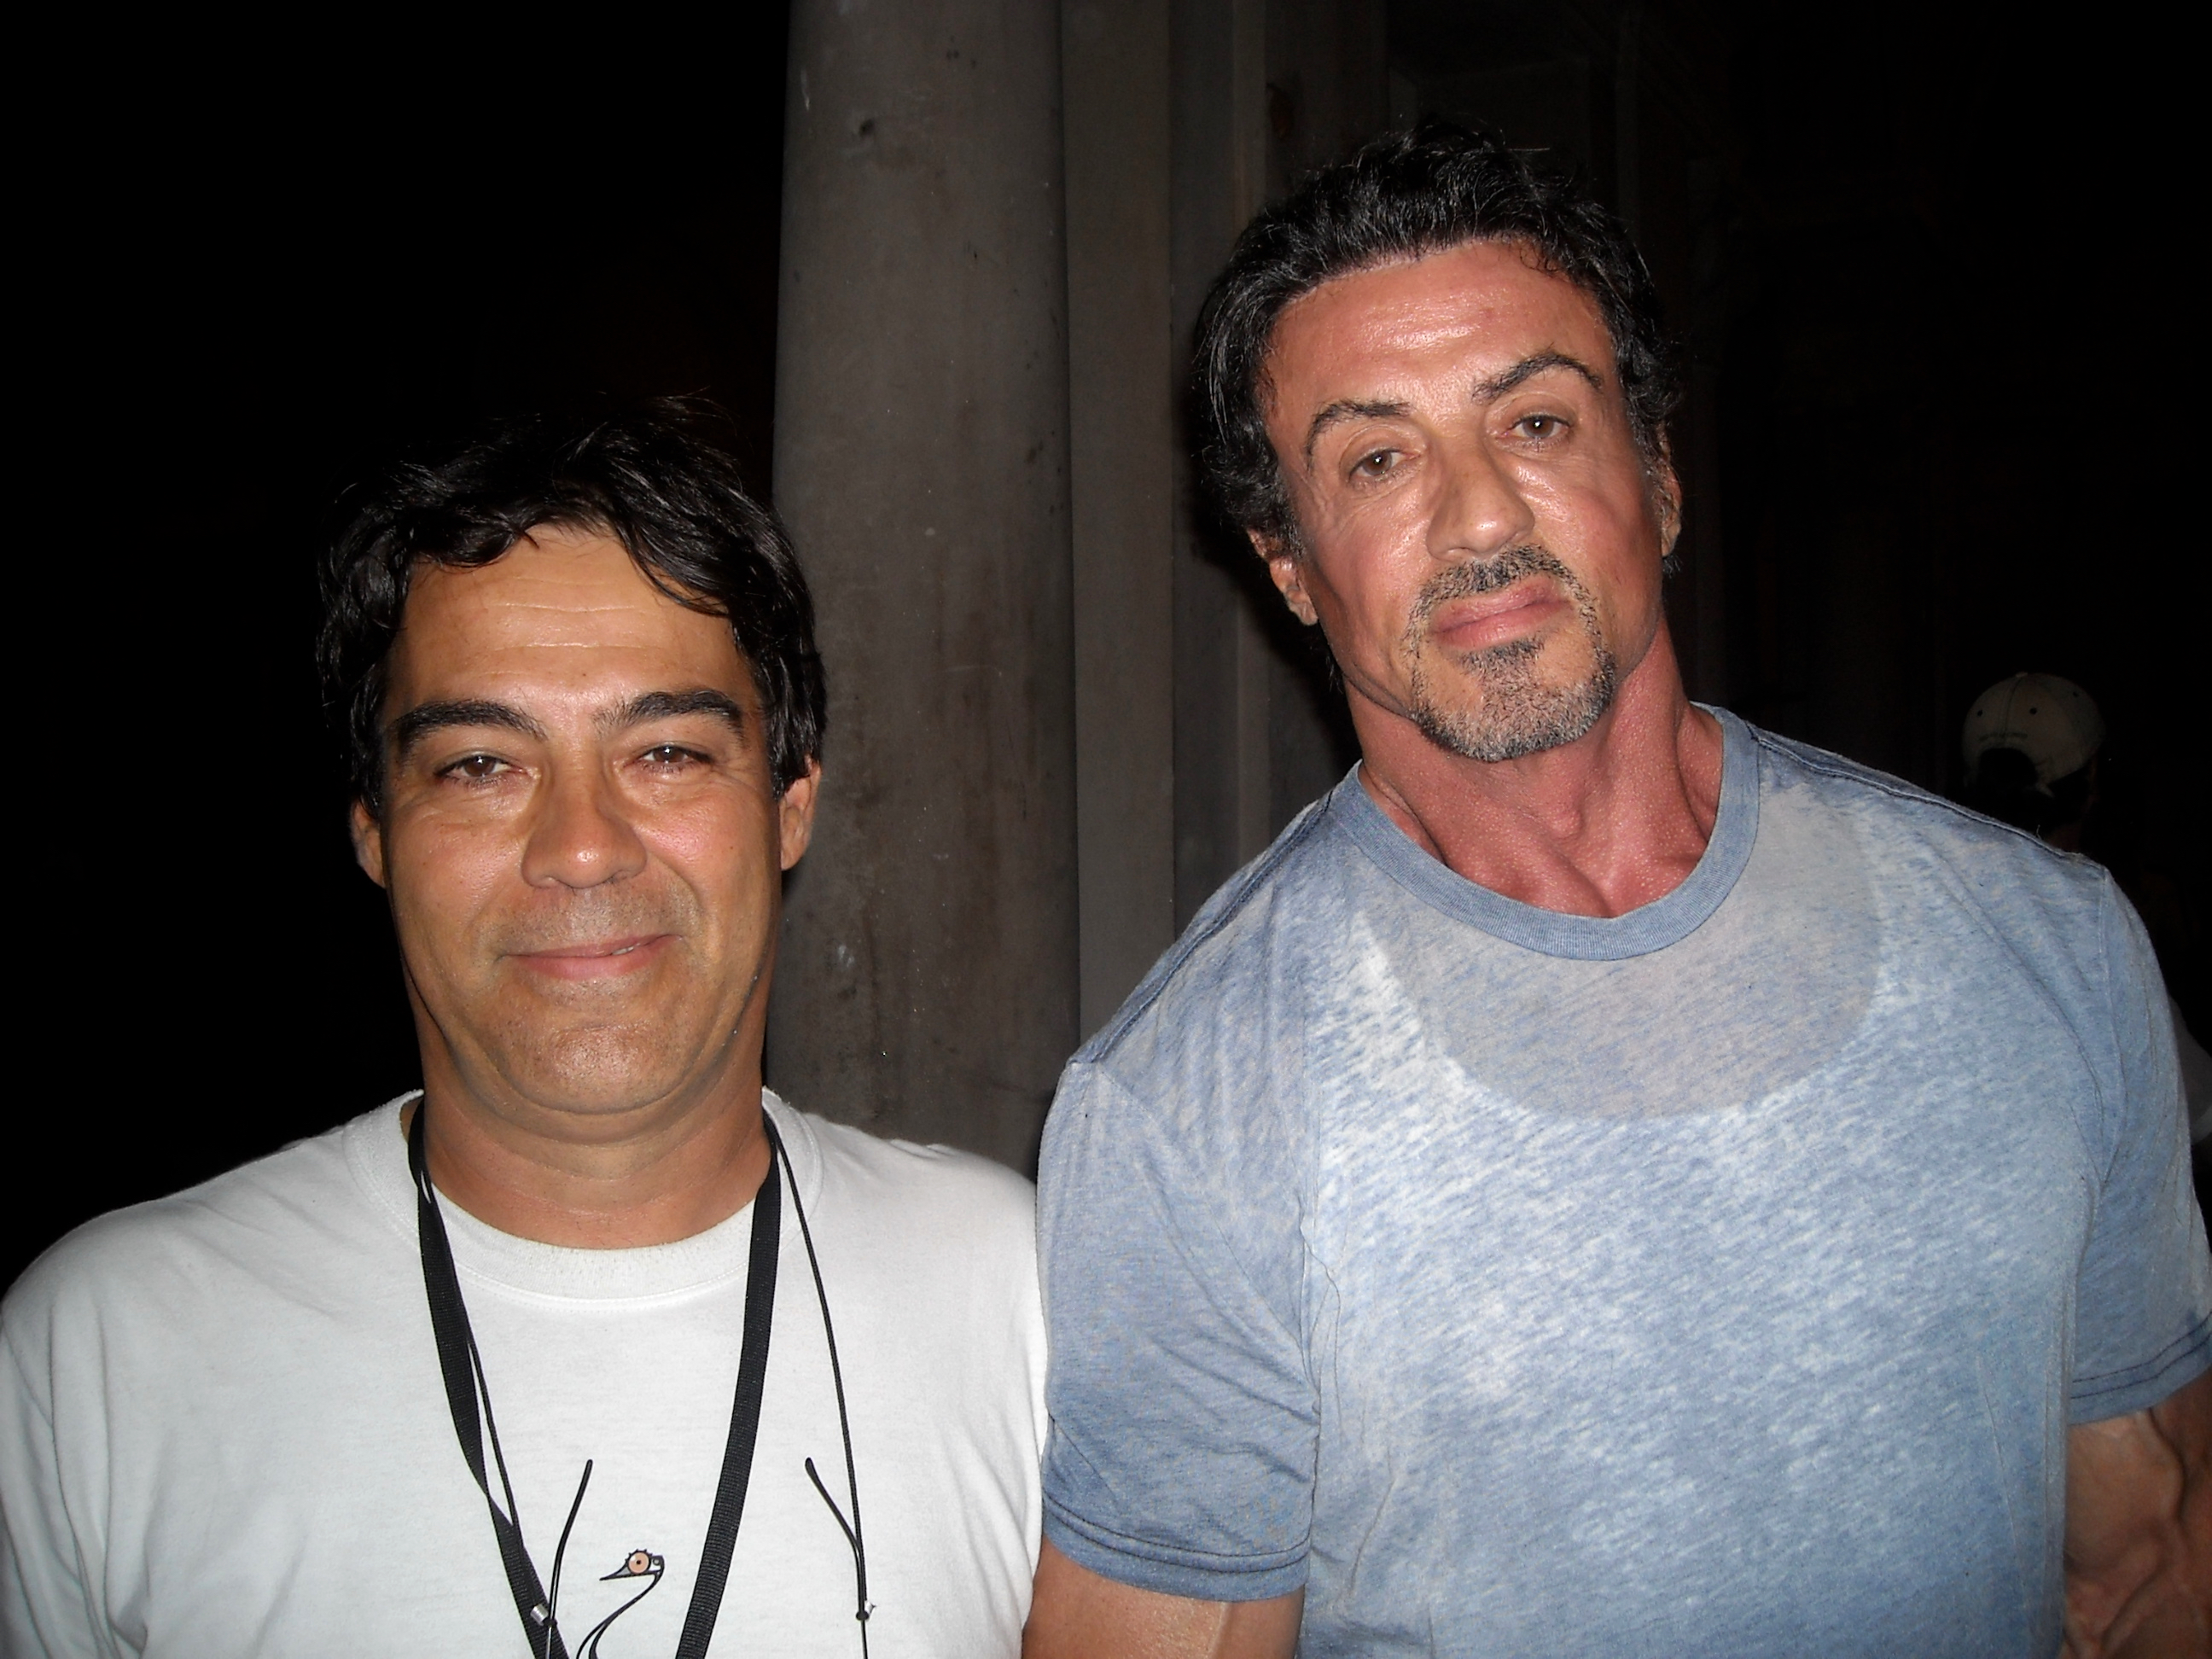 Sylvester Stallone - The Expendables